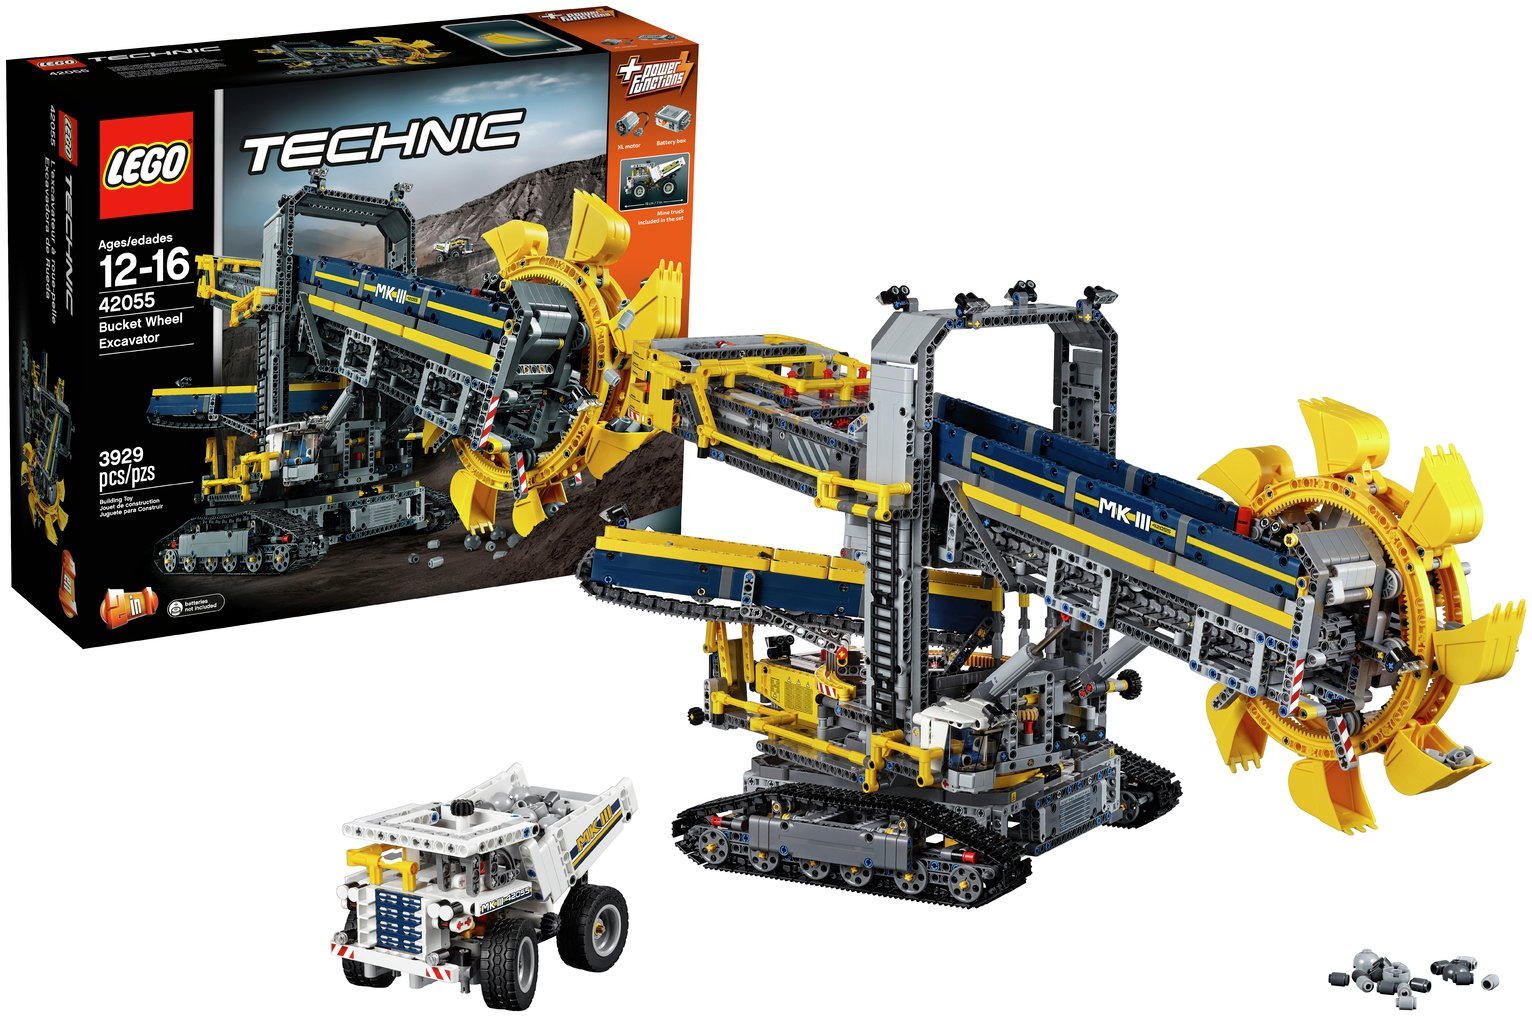 Image of LEGO Technic Bucket Wheel Excavator - 42055